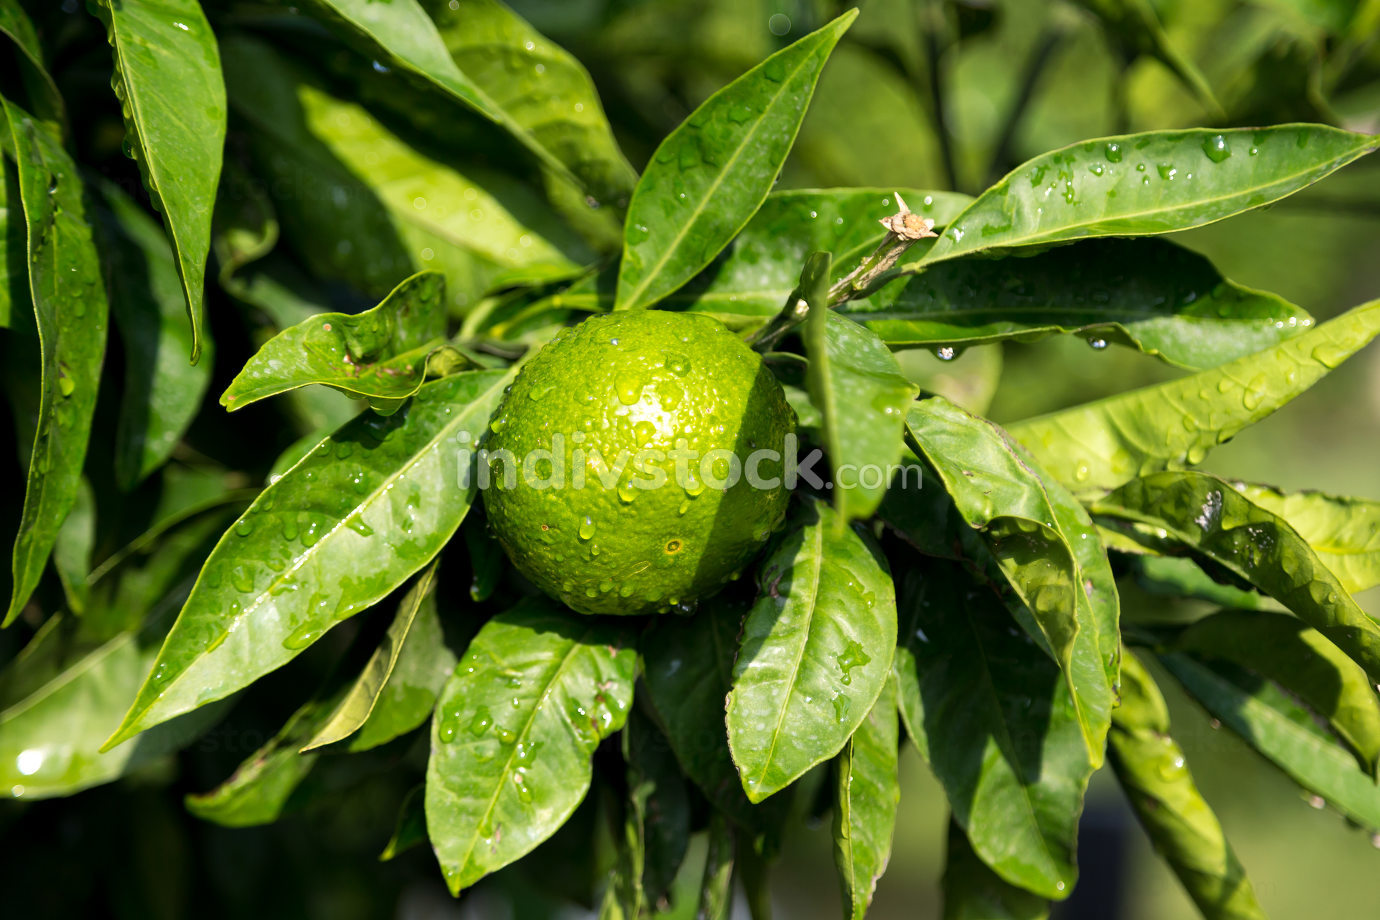 a tangerine trees with unripe fruits and green leaves